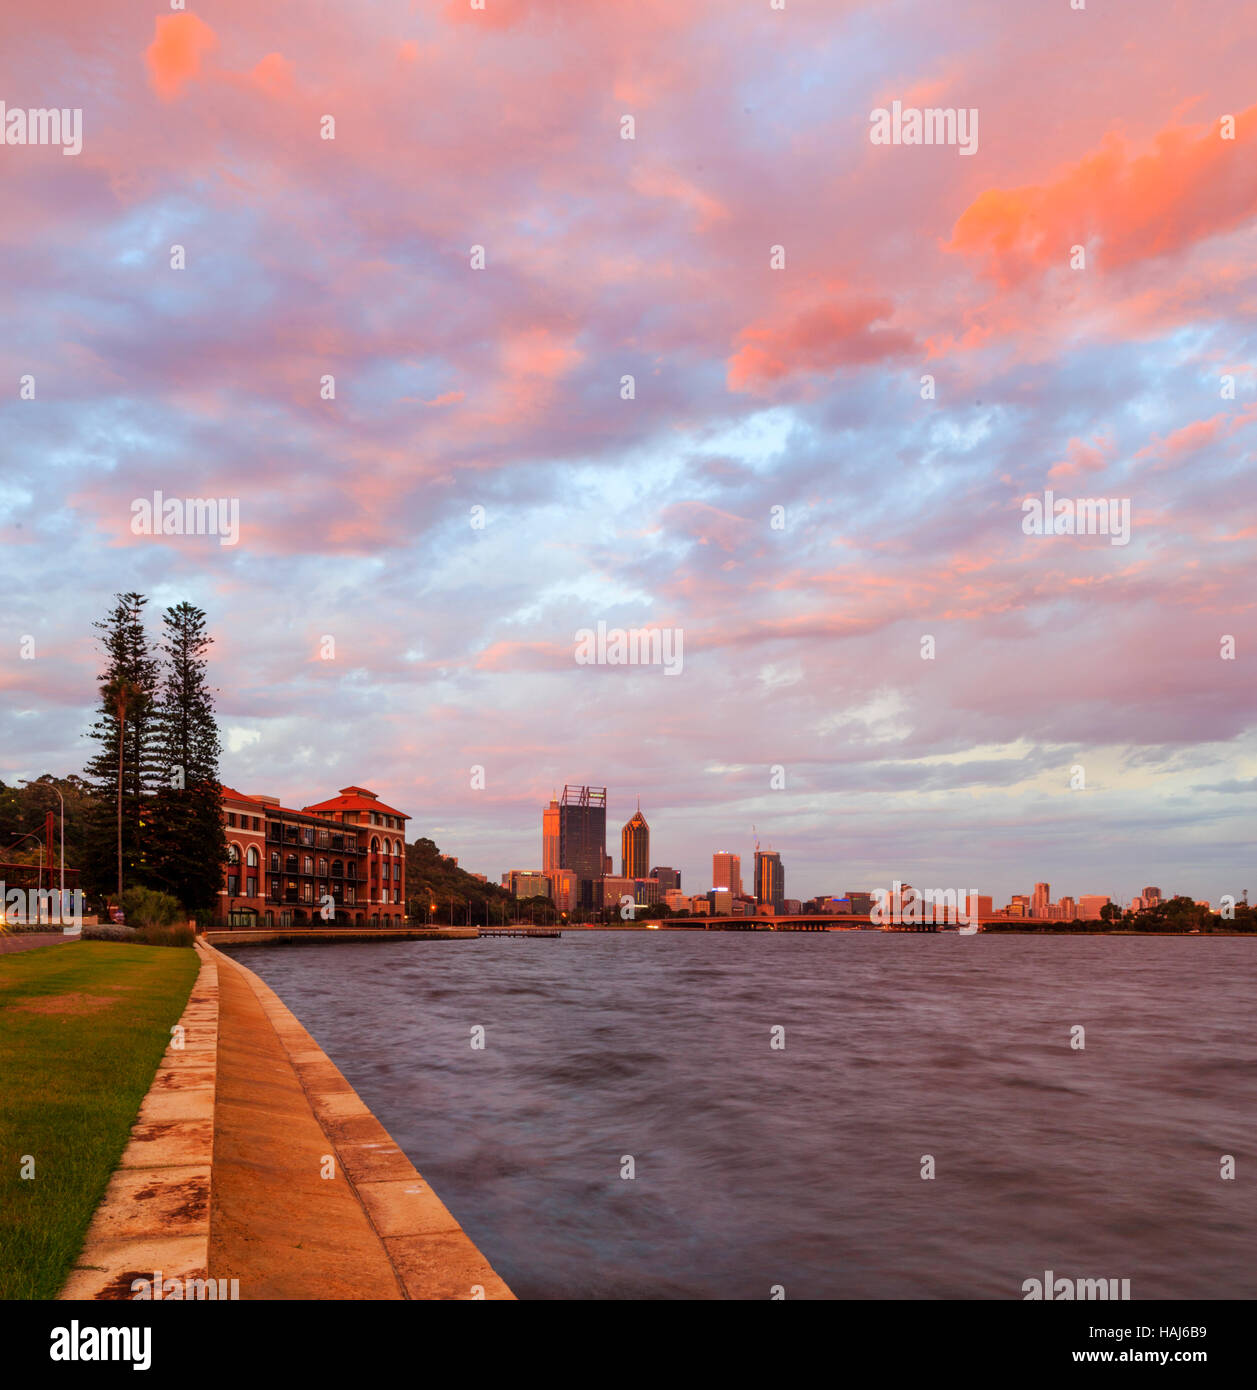 The Old Swan Brewery, Perth city and the Swan River at sunset. Perth, Western Australia - Stock Image